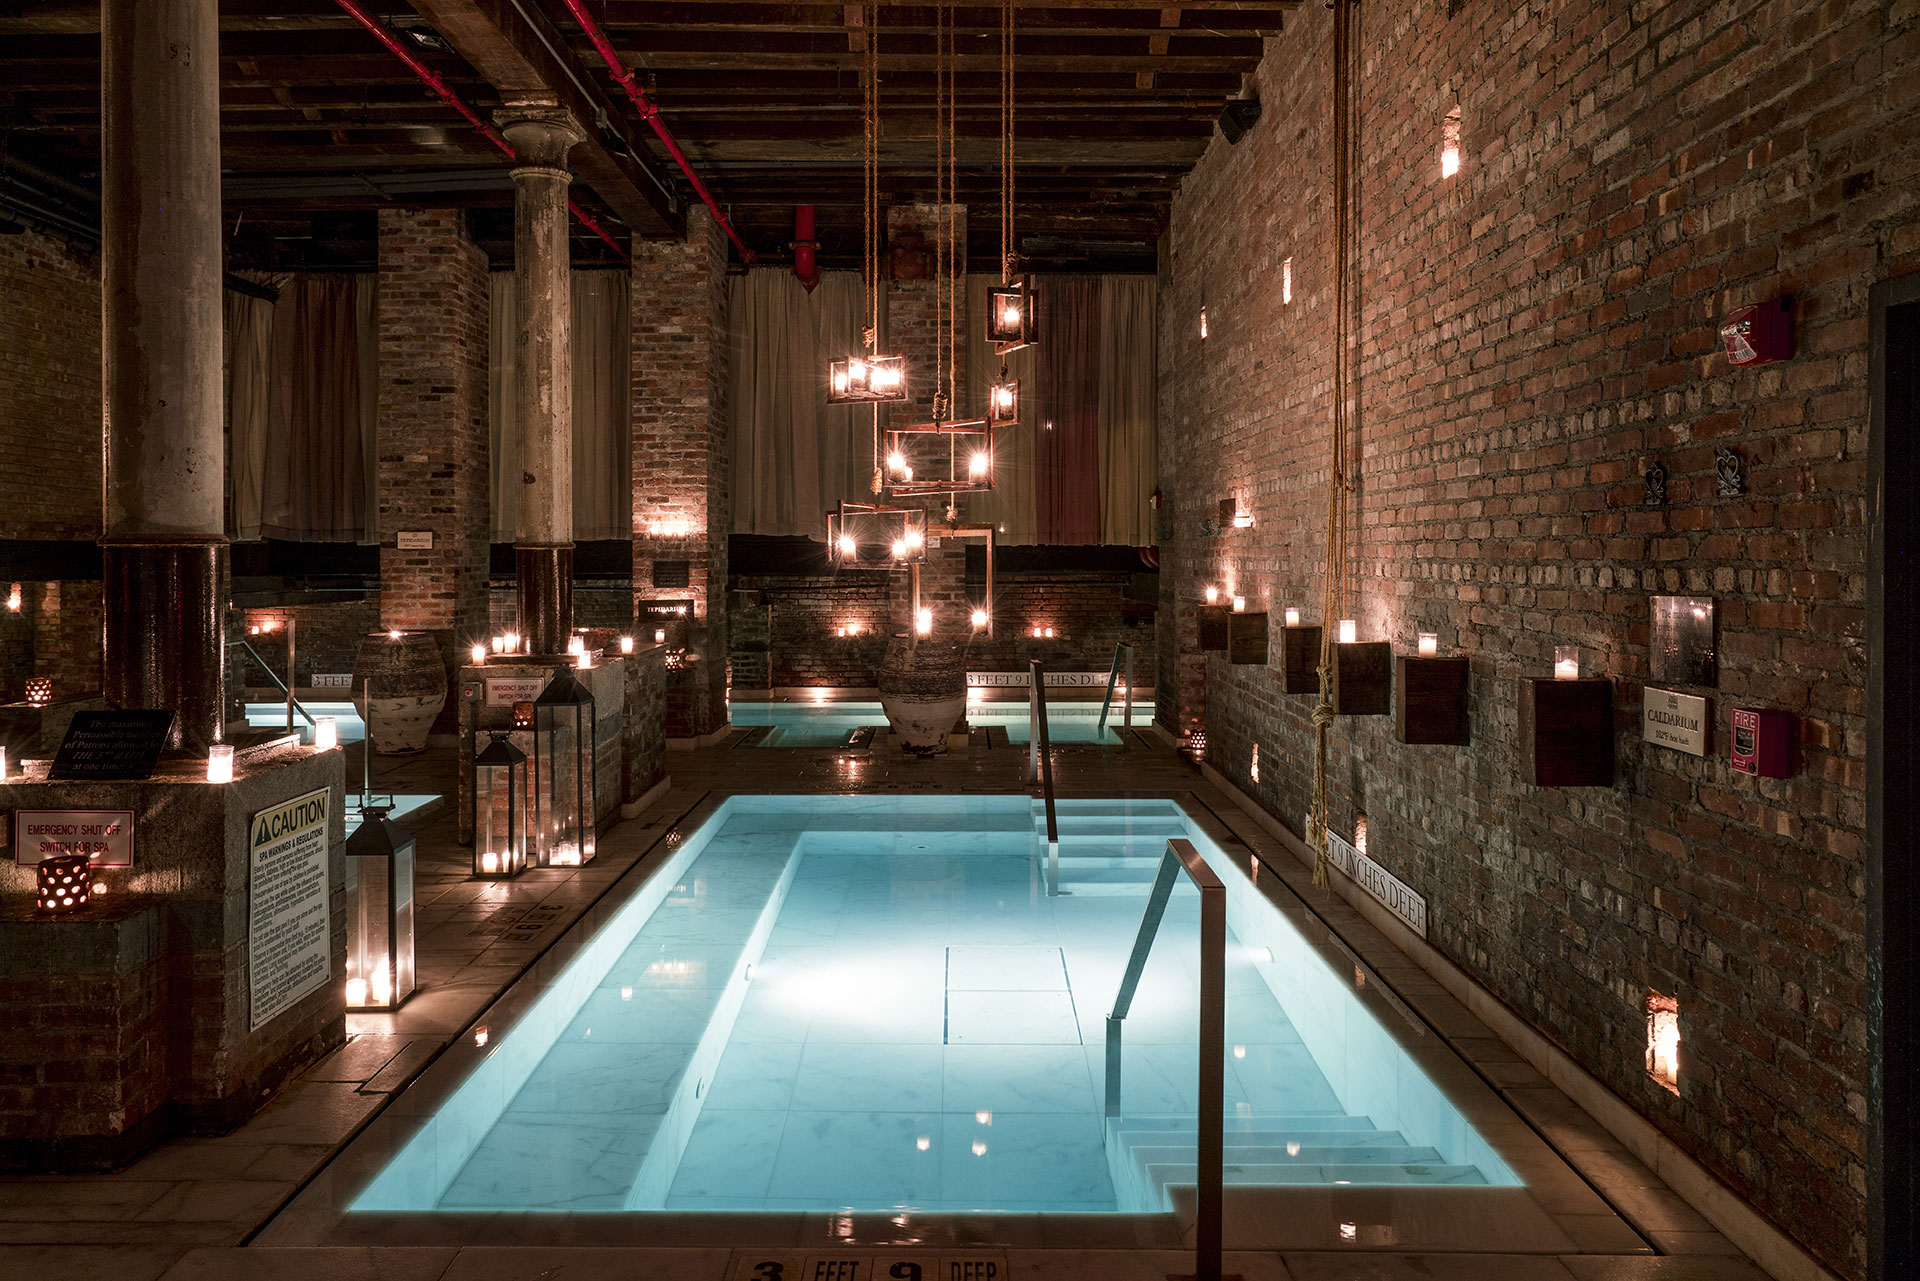 Sojo Spa Donation Request Ancient Baths New York Aire Ancient Baths New York